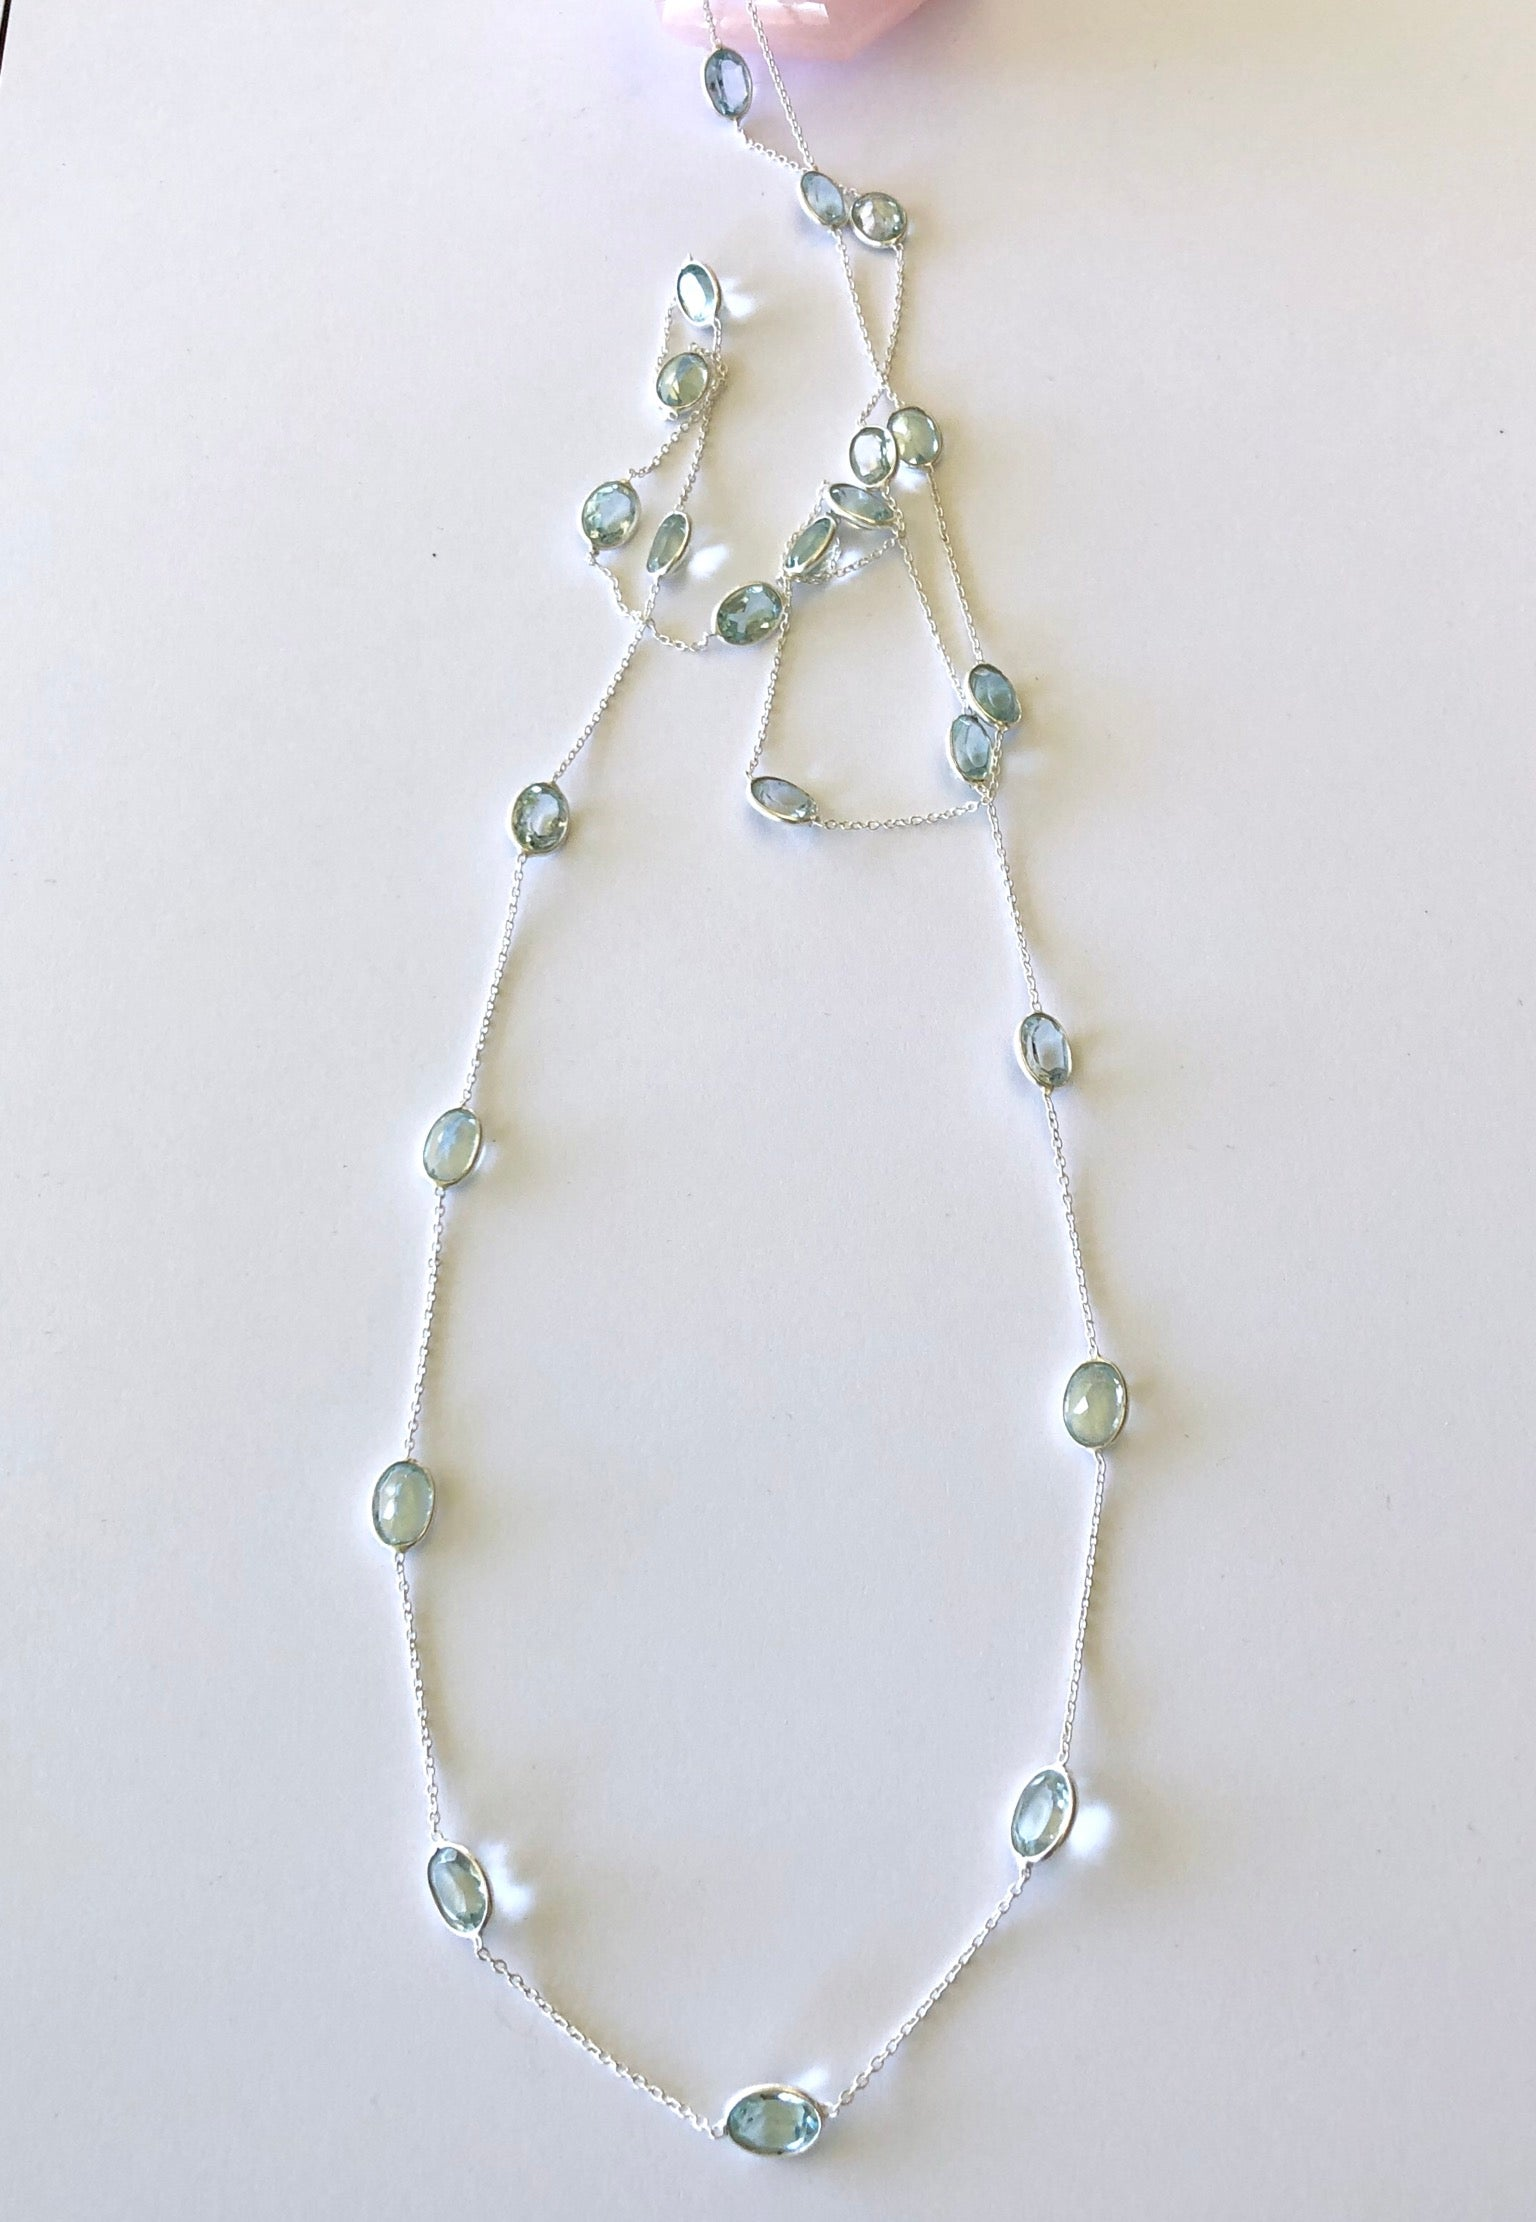 blue topaz stones all around a silver chain necklace